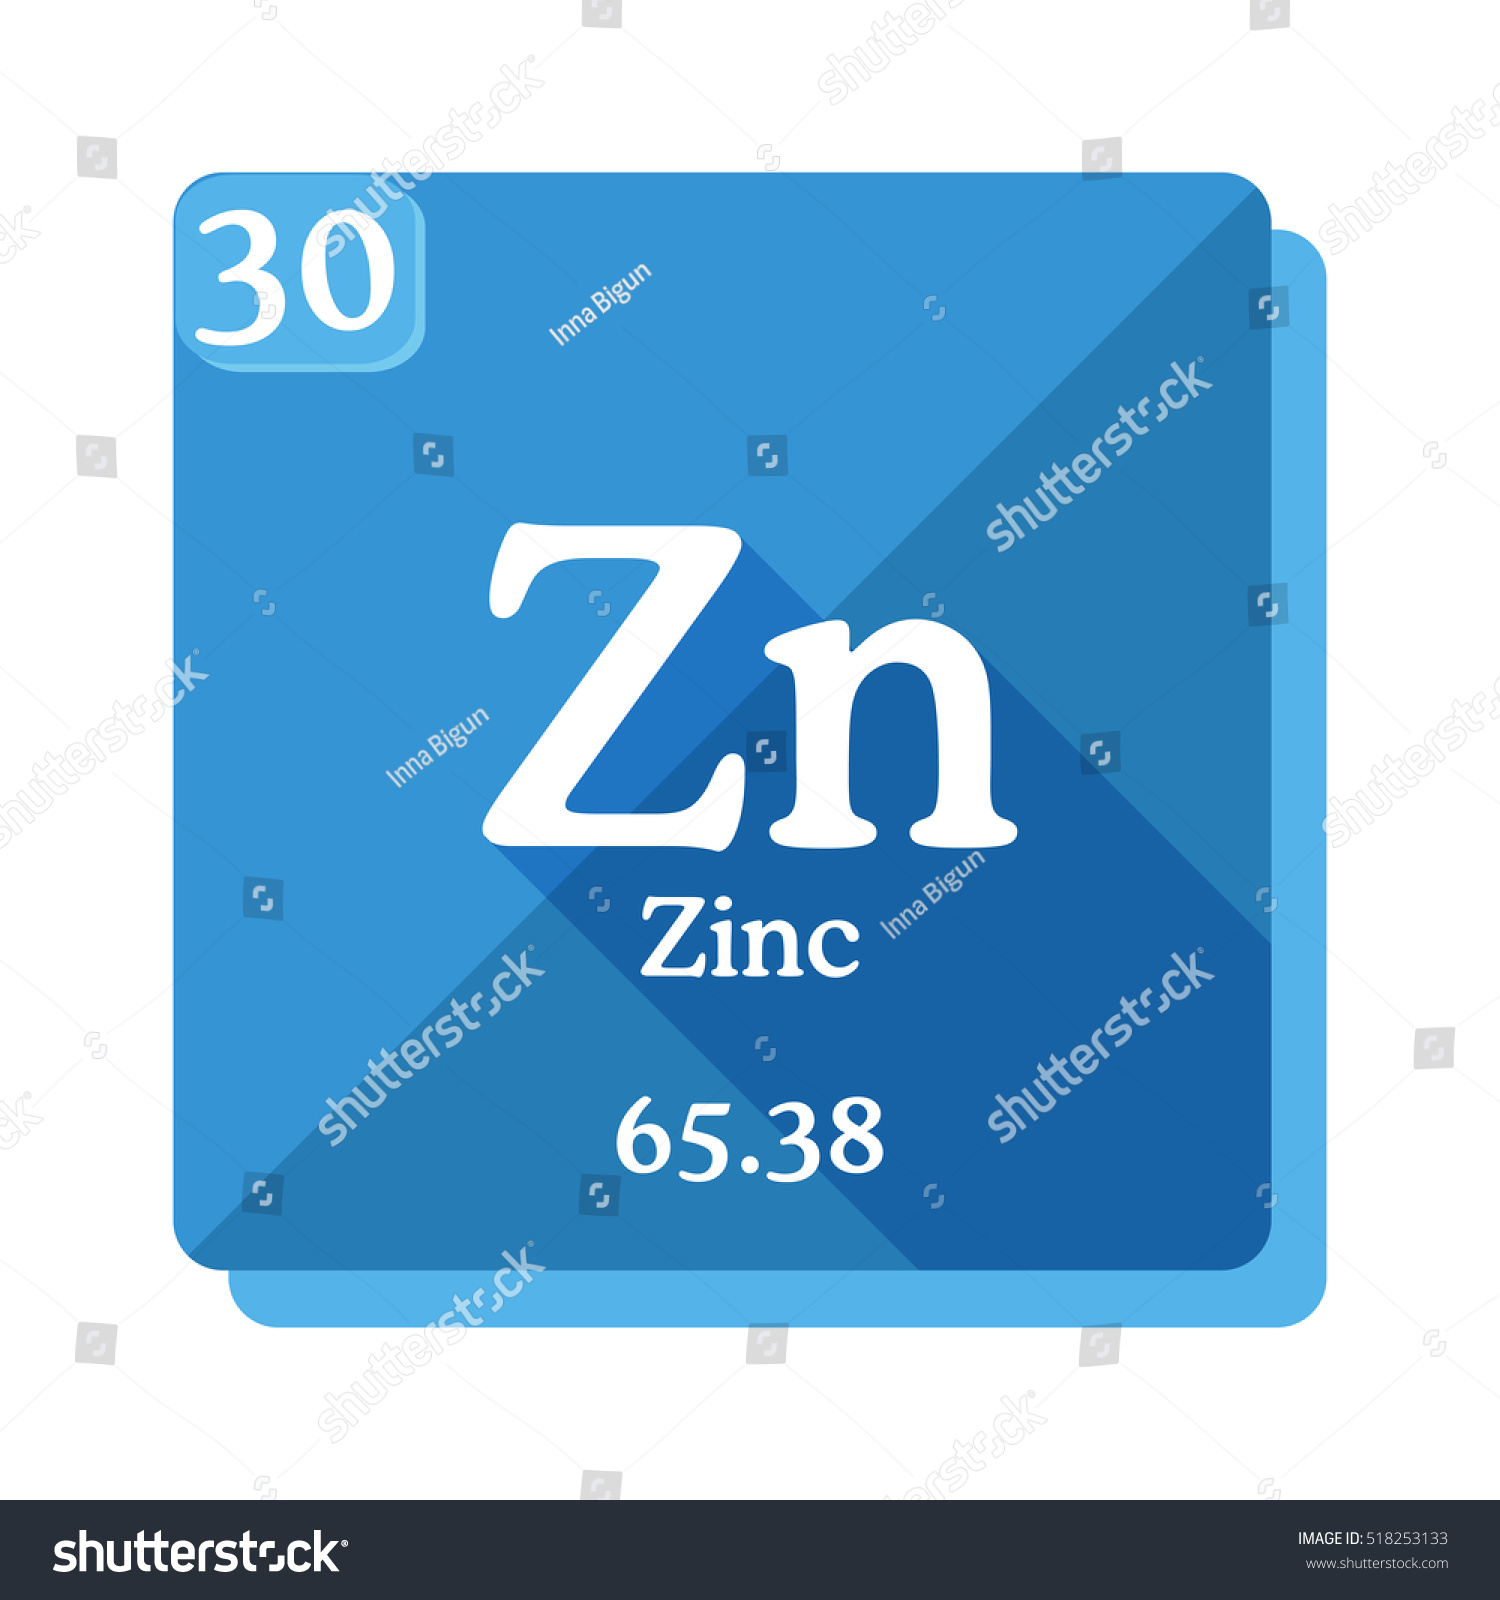 Zinc zn element periodic table flat stock vector 518253133 zinc zn element of the periodic table flat icon with long shadow gamestrikefo Gallery